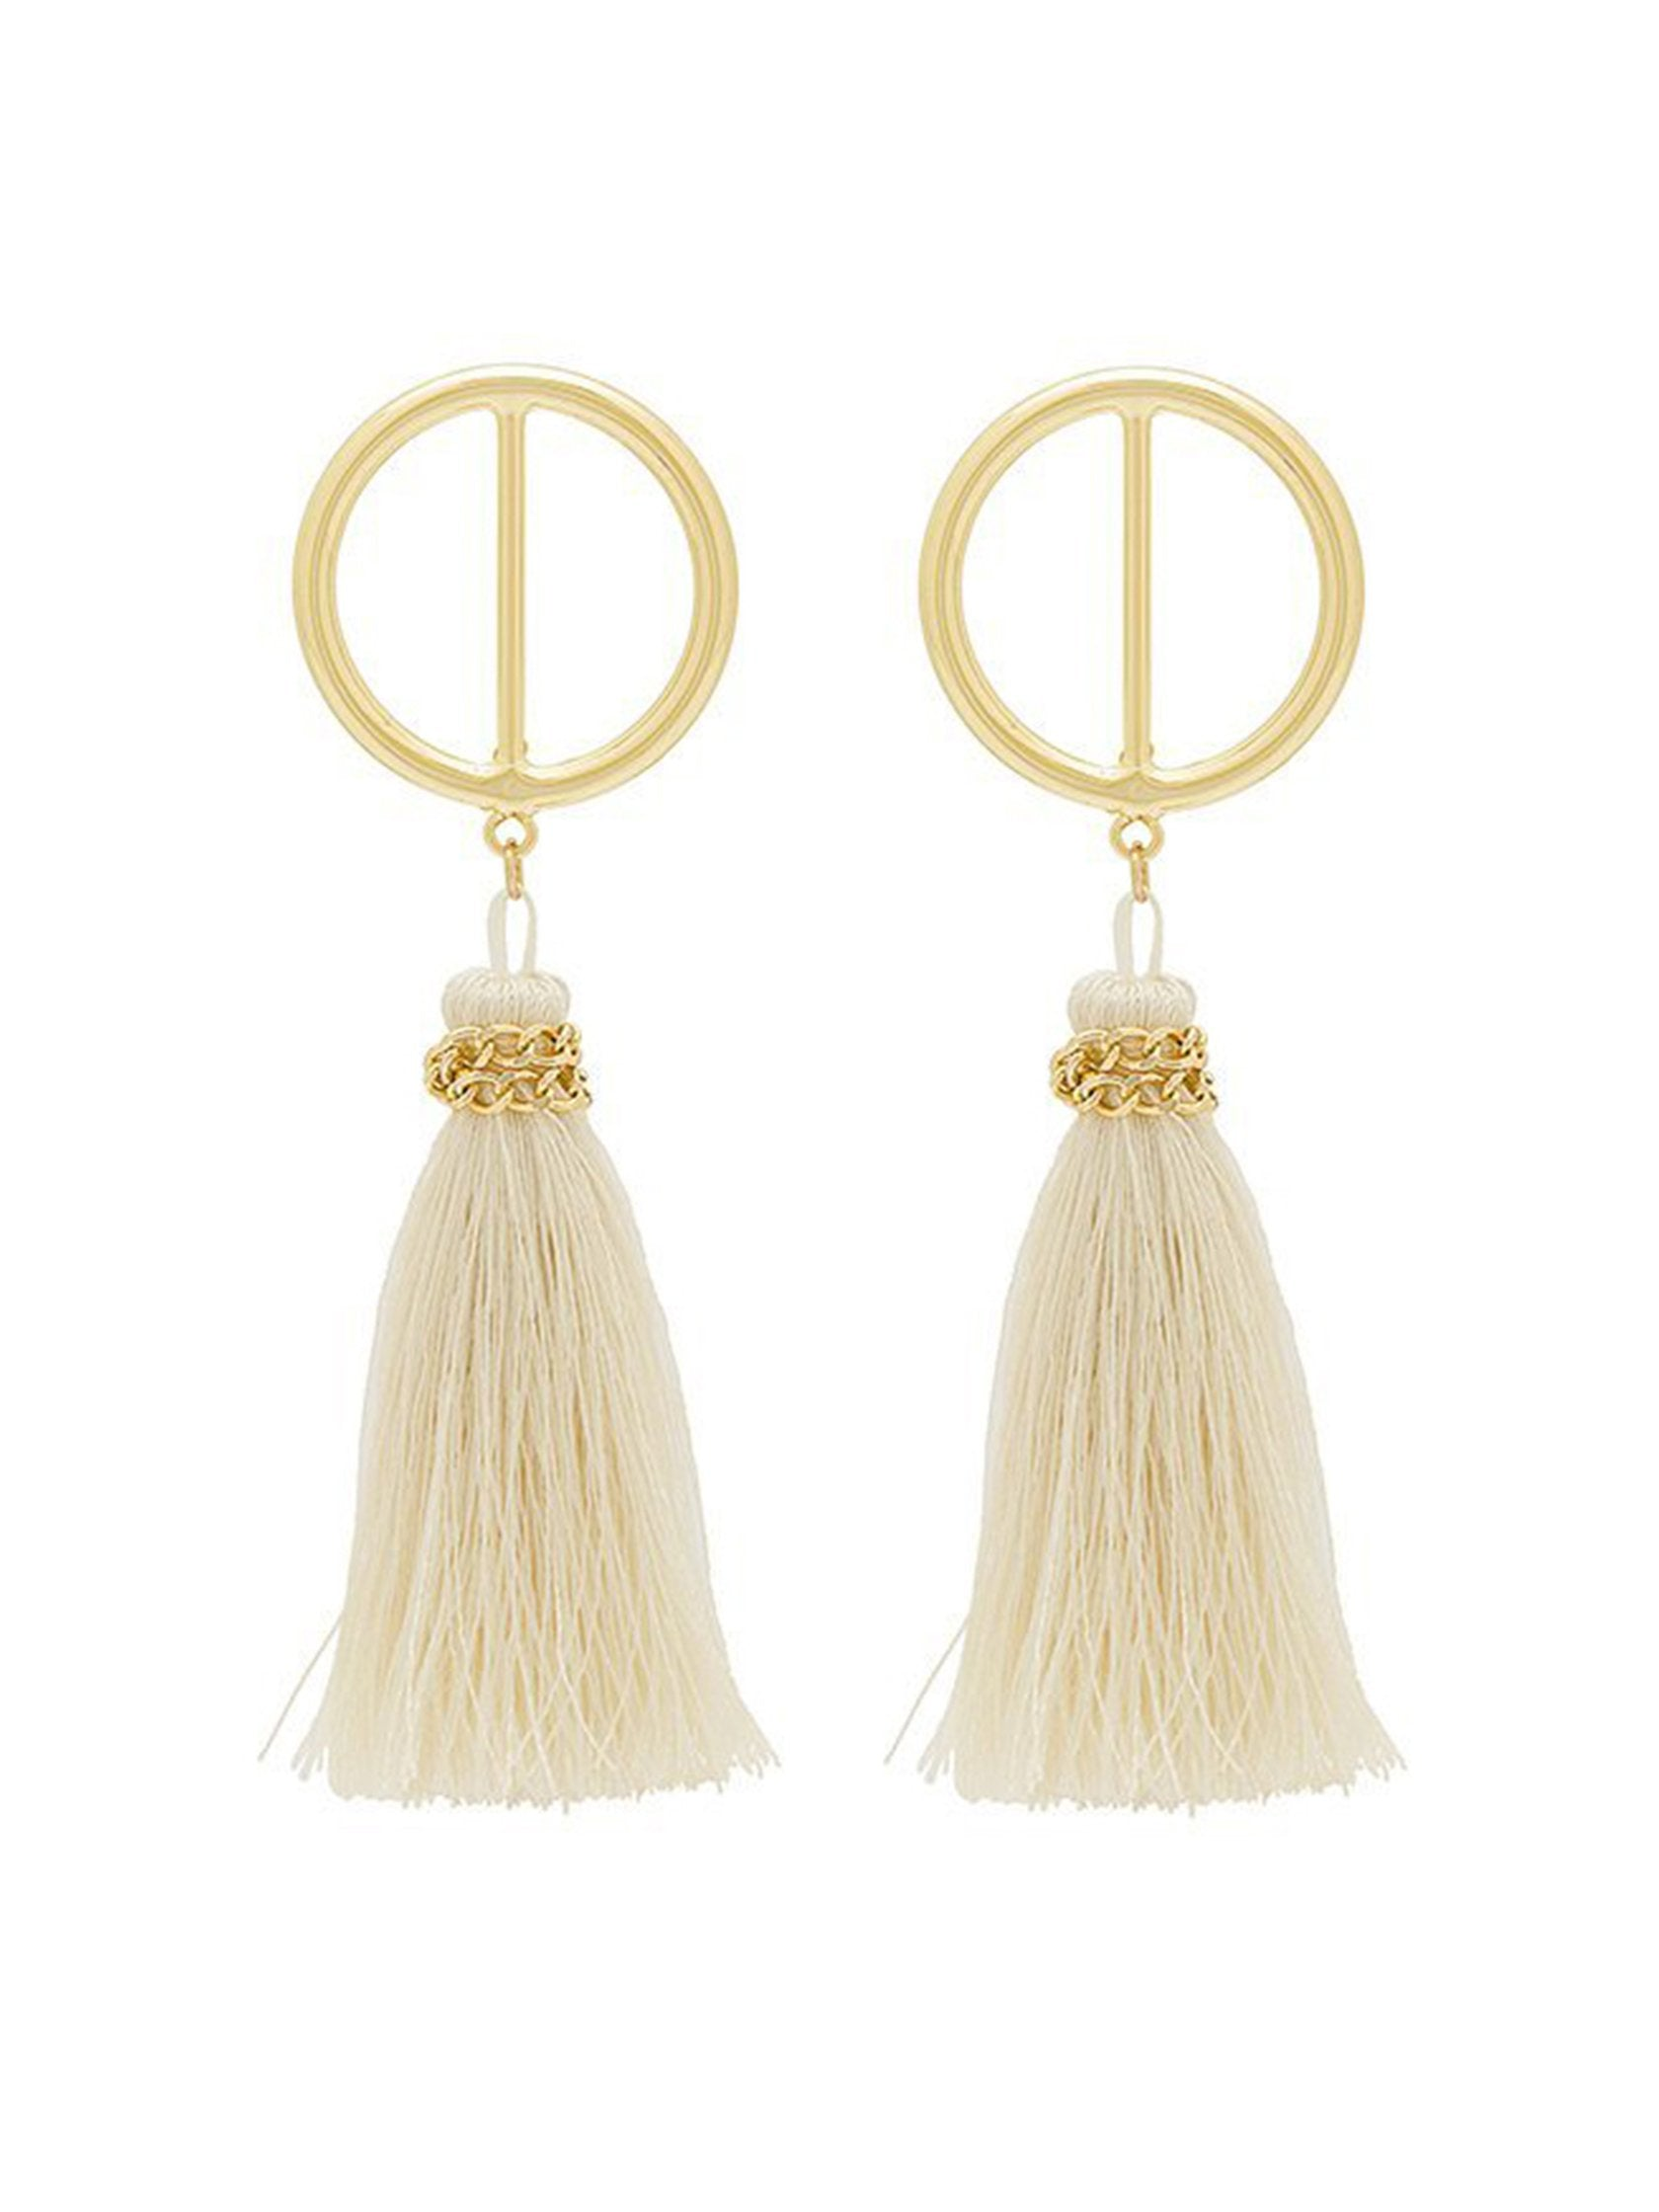 Women outfit in a earrings rental from Shashi called Mia Hoop Earring